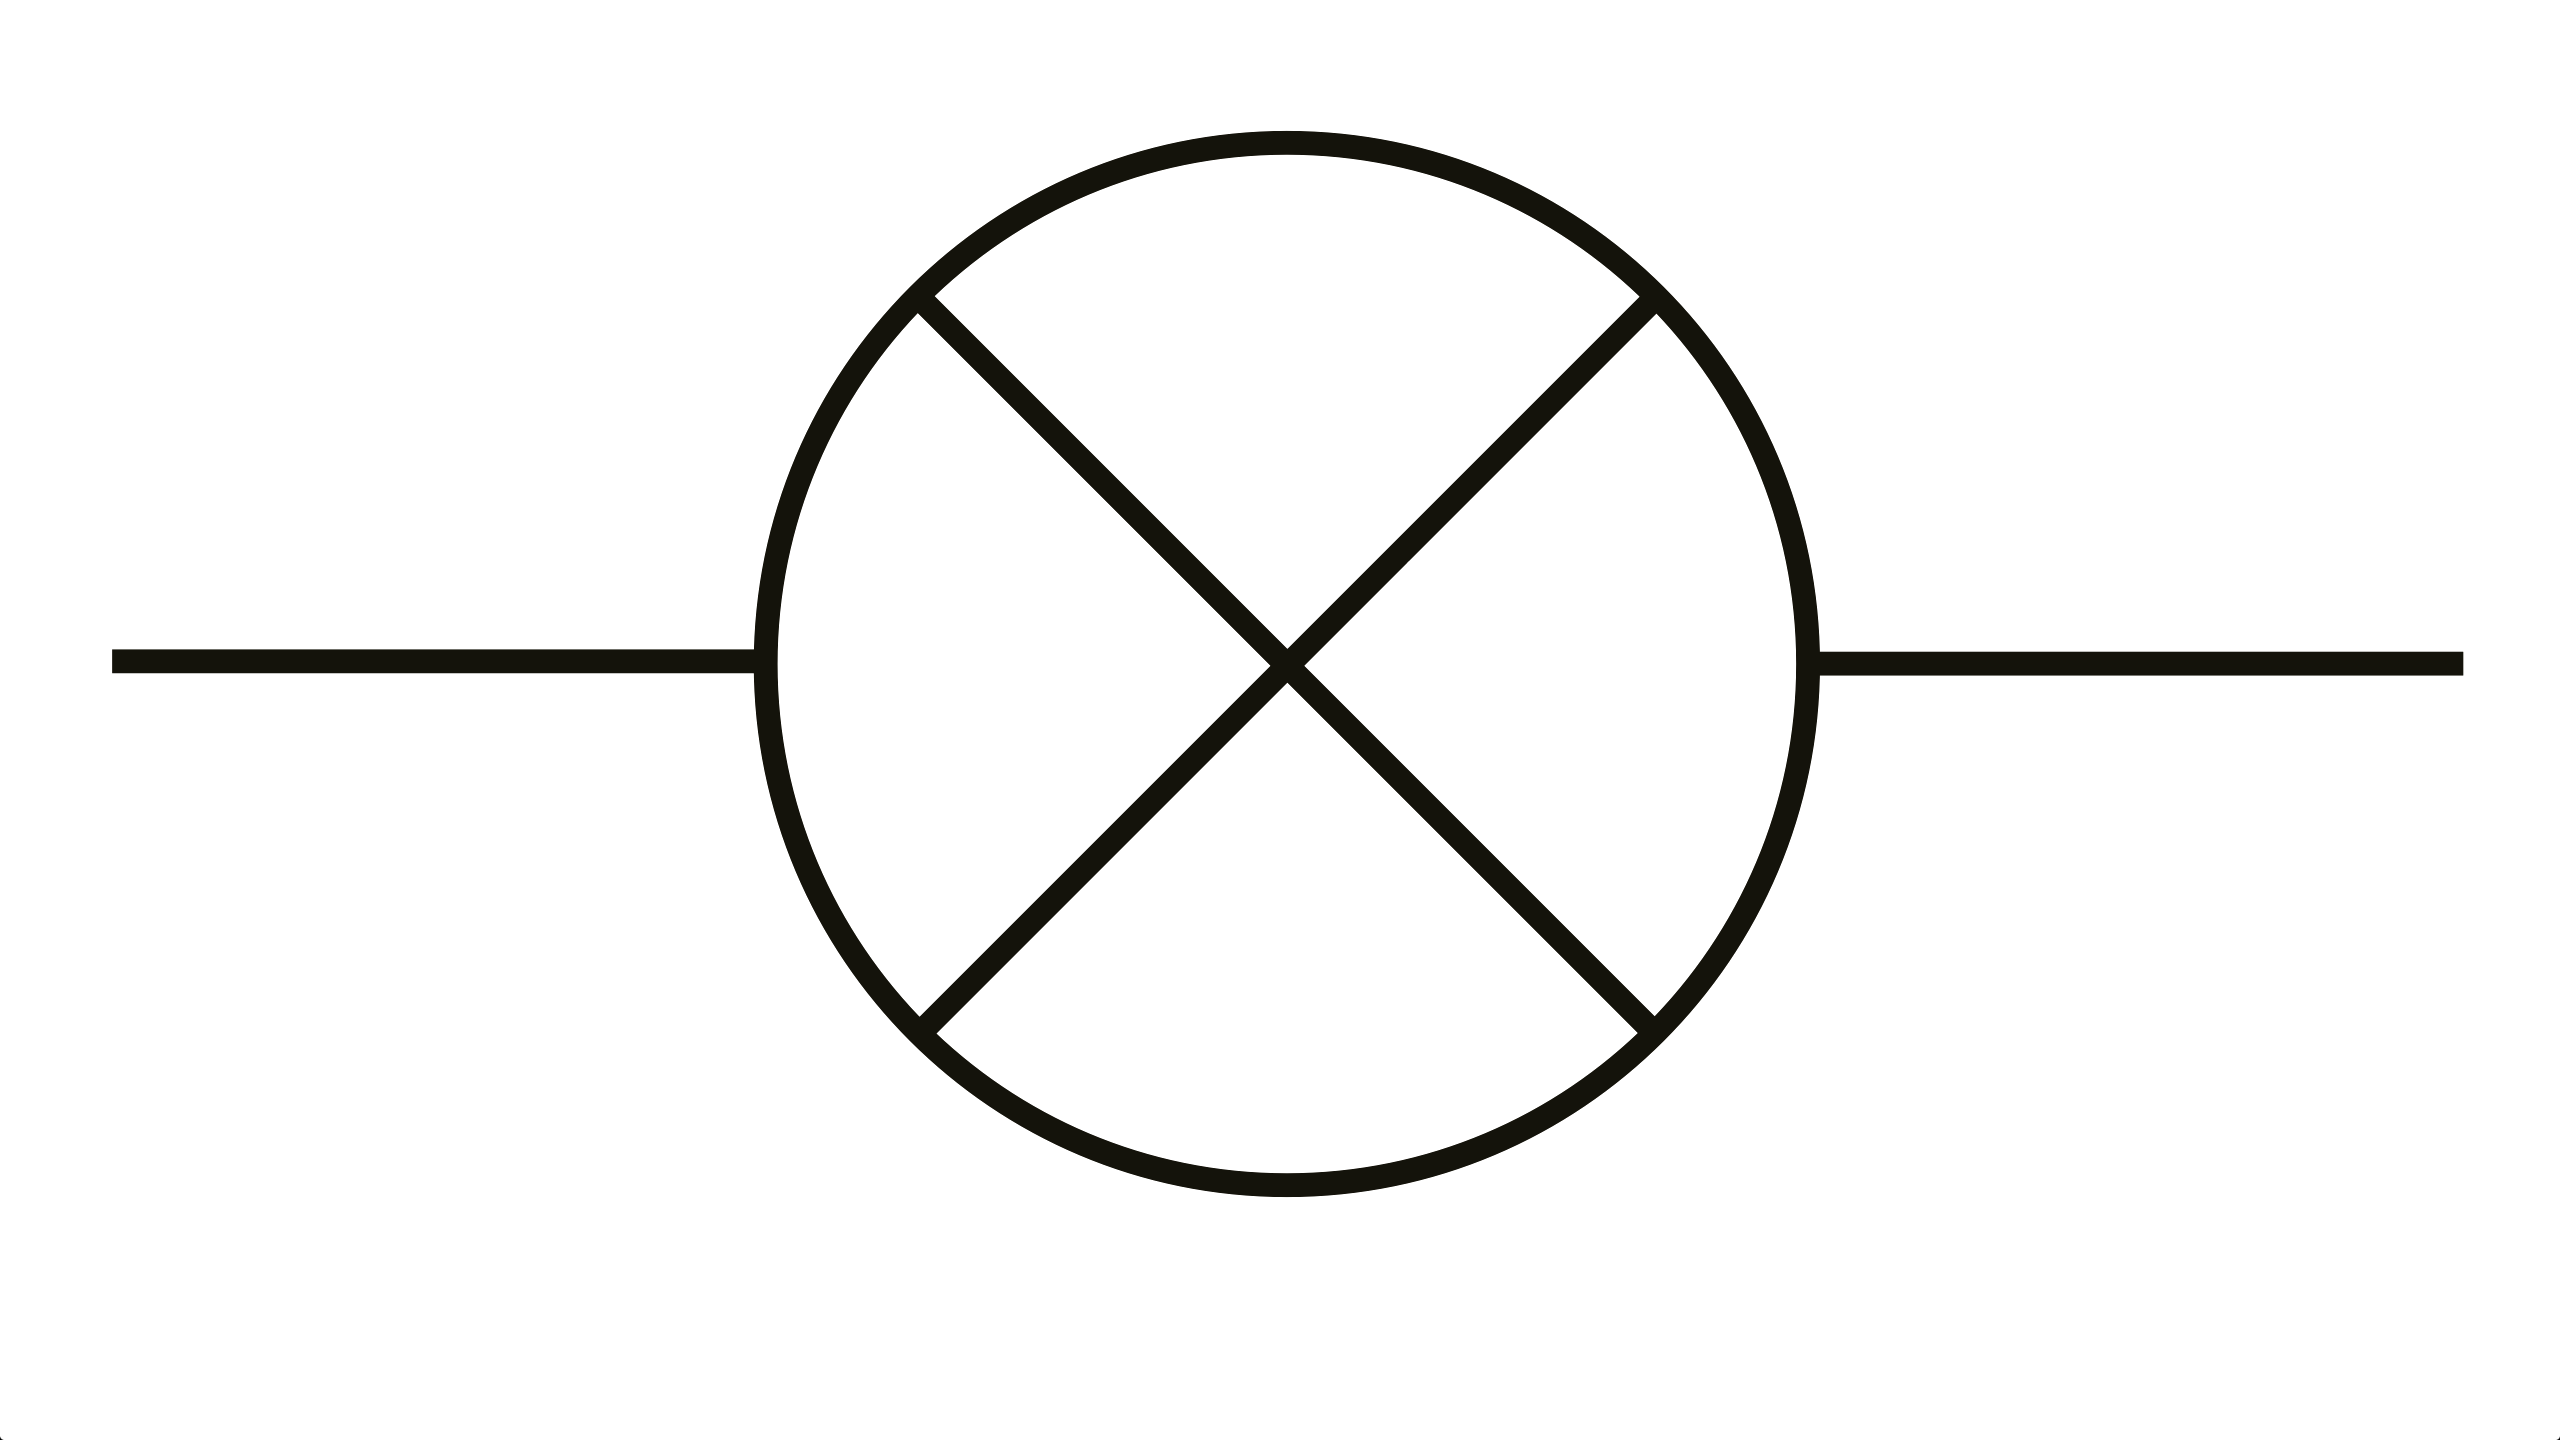 Component Symbol For A Led